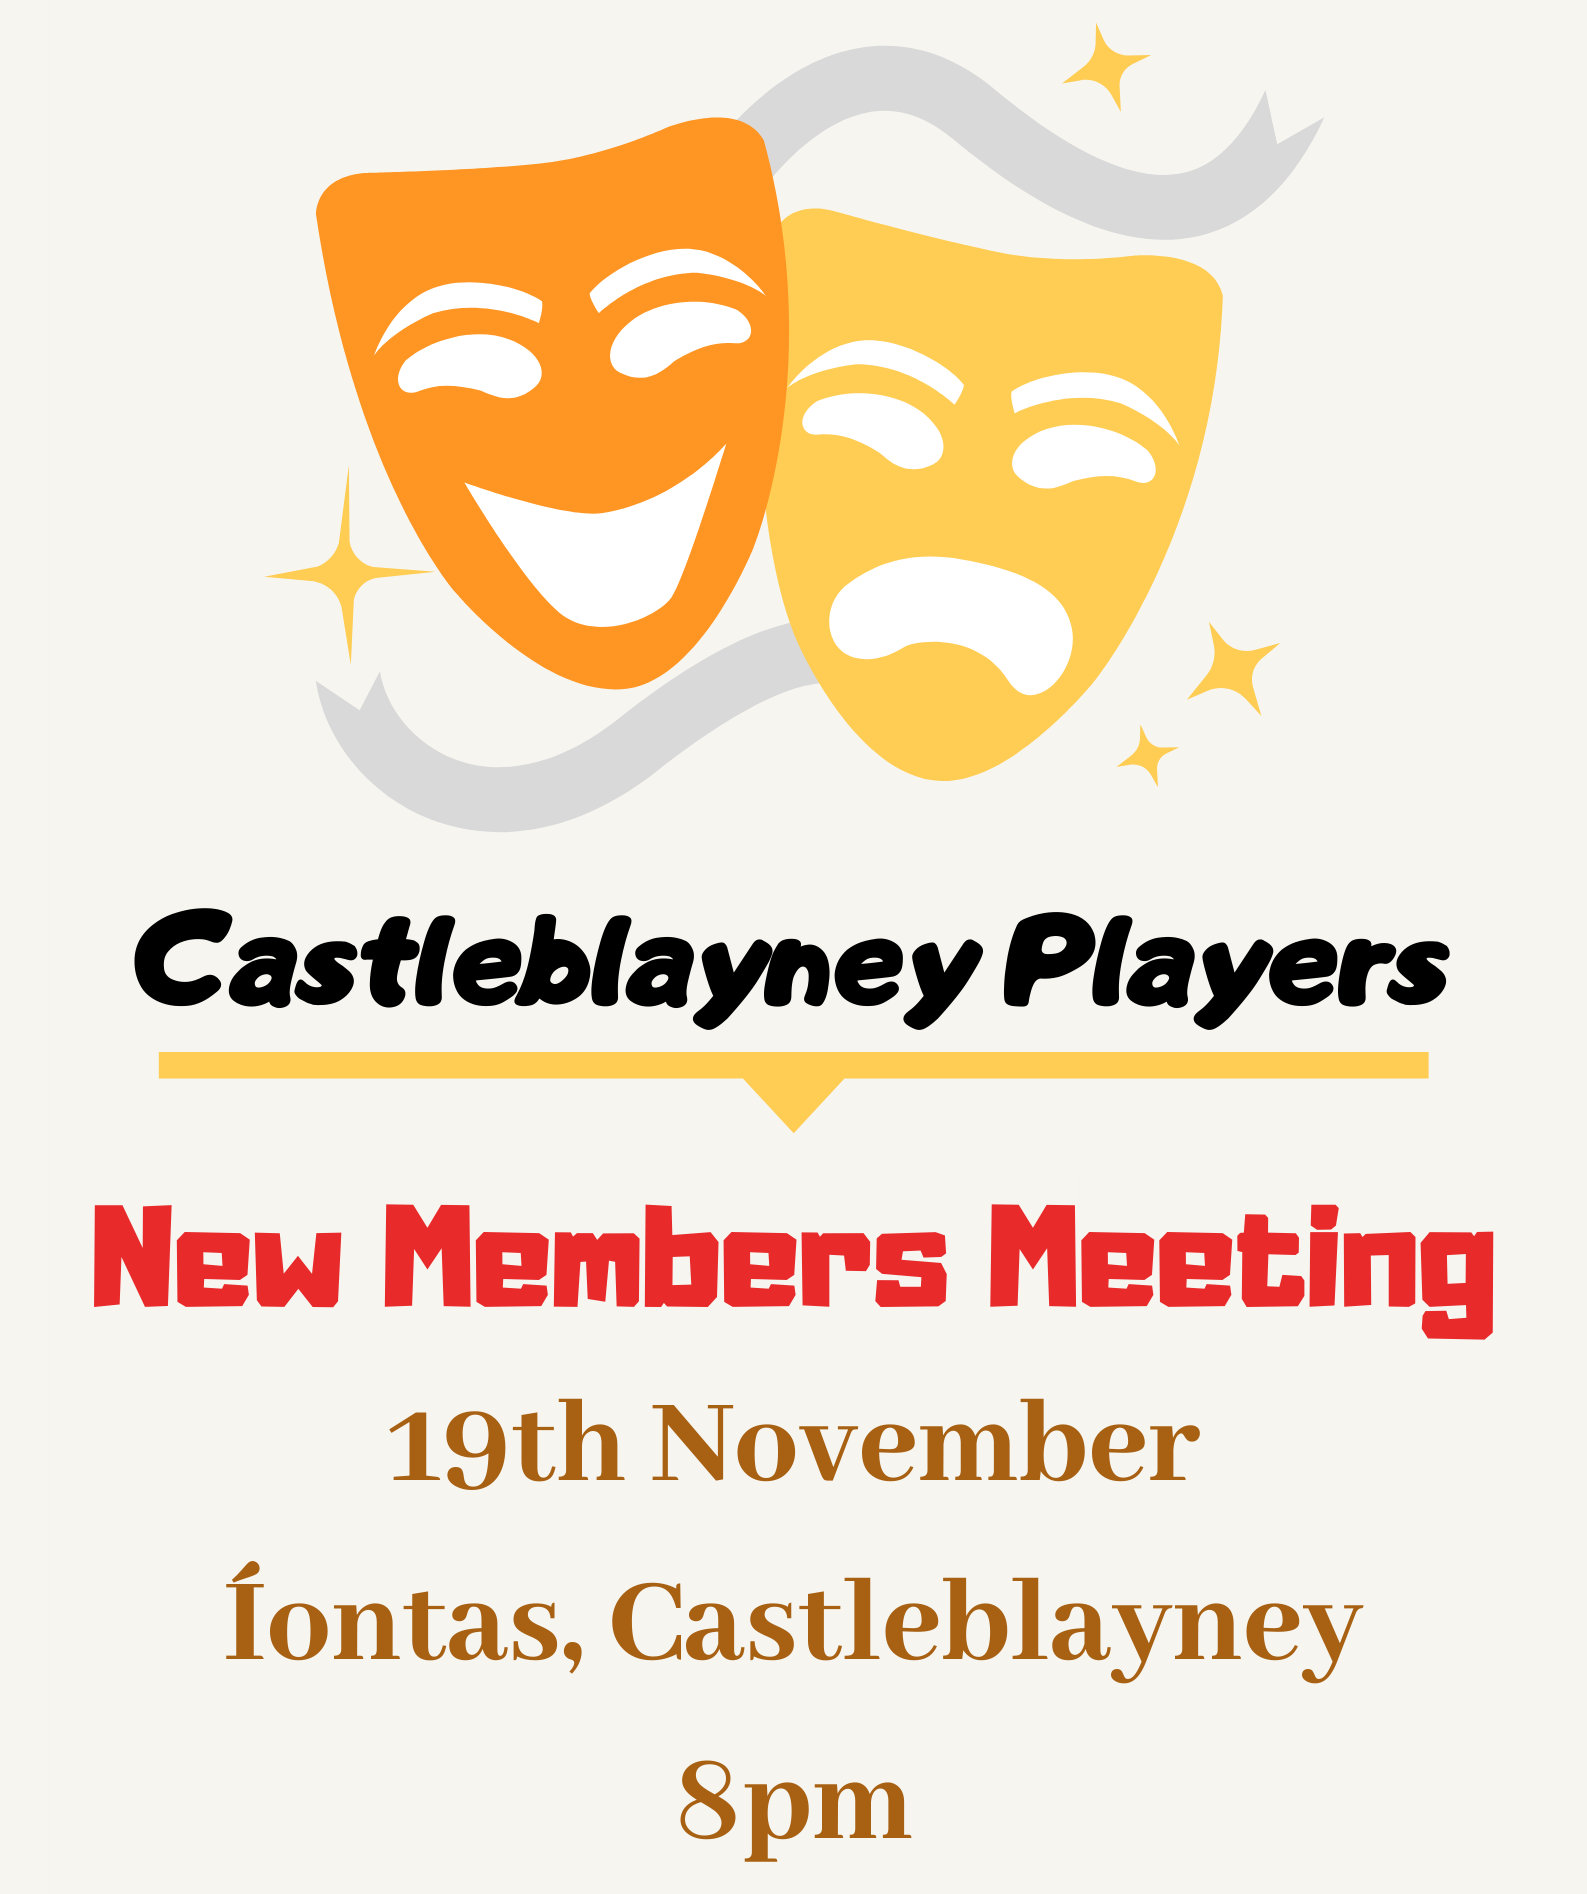 Upcoming Events in Iontas Theatre - Castleblayney